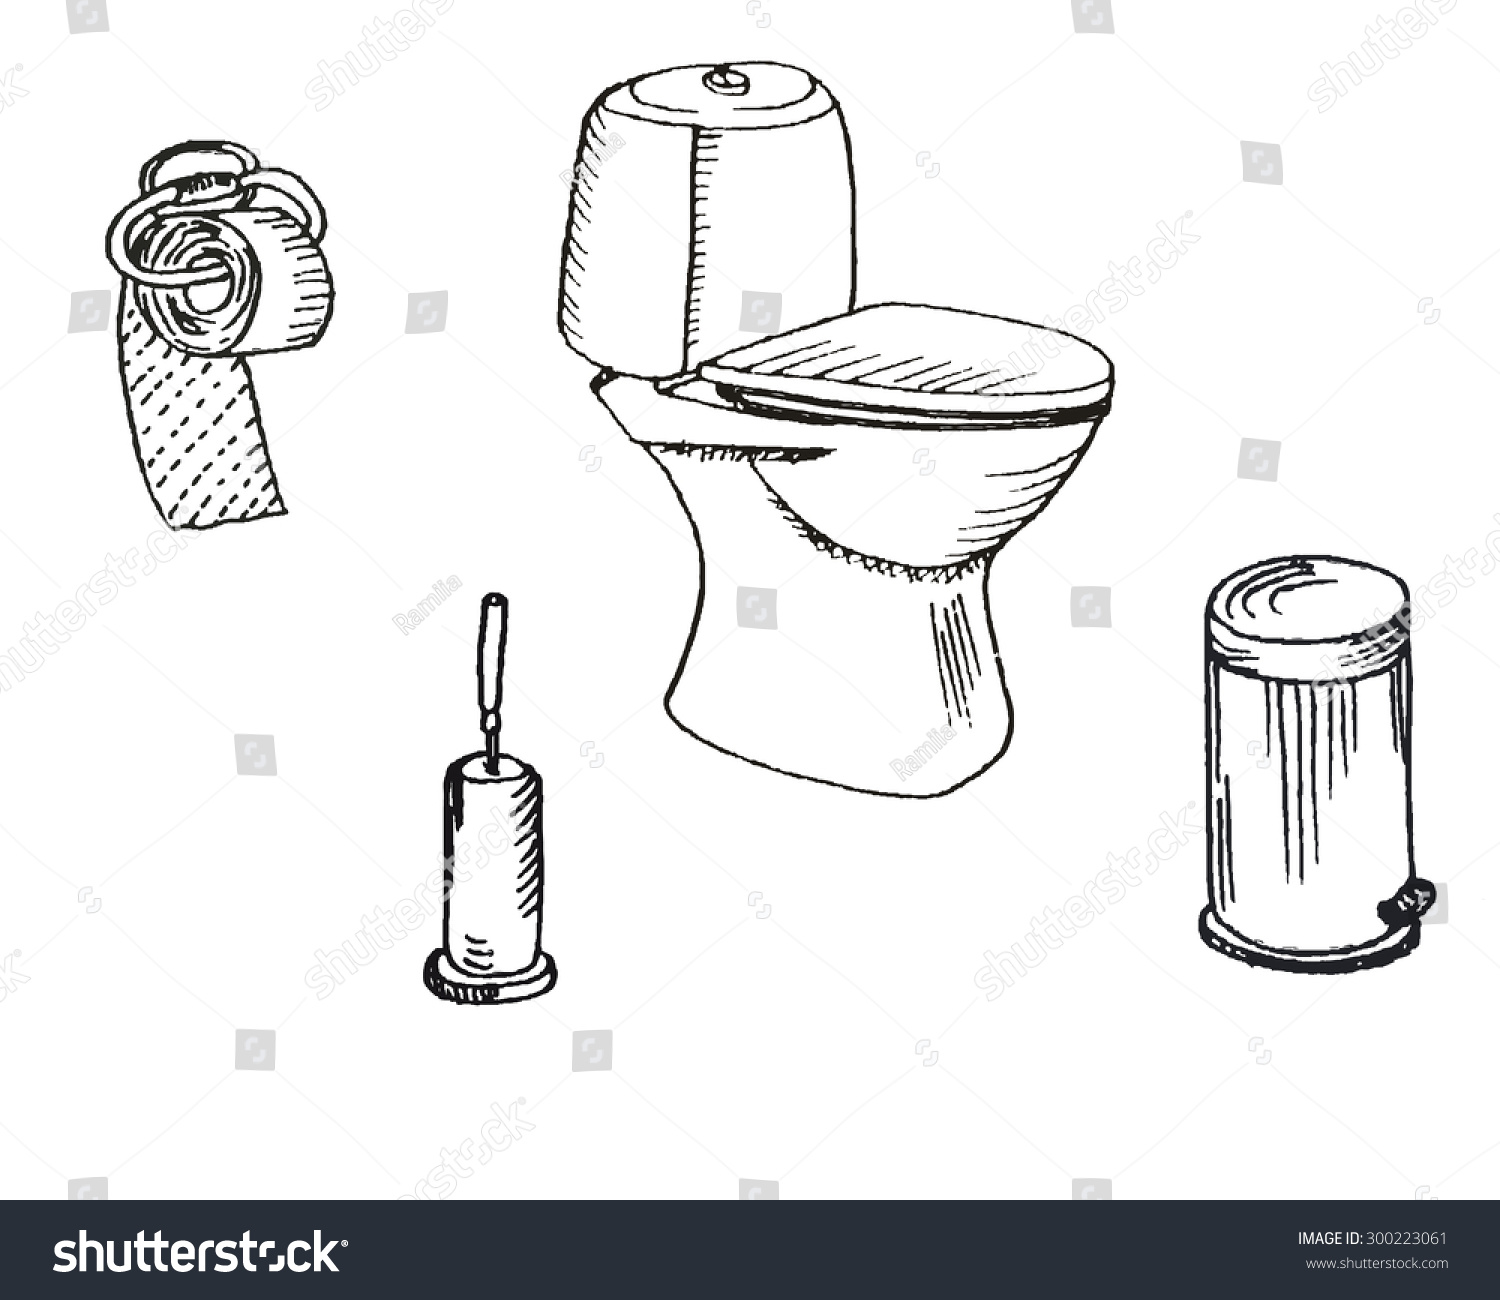 Hand Drawn Bathroom Set. Toilet Bowl And Toilet Paper, Bin